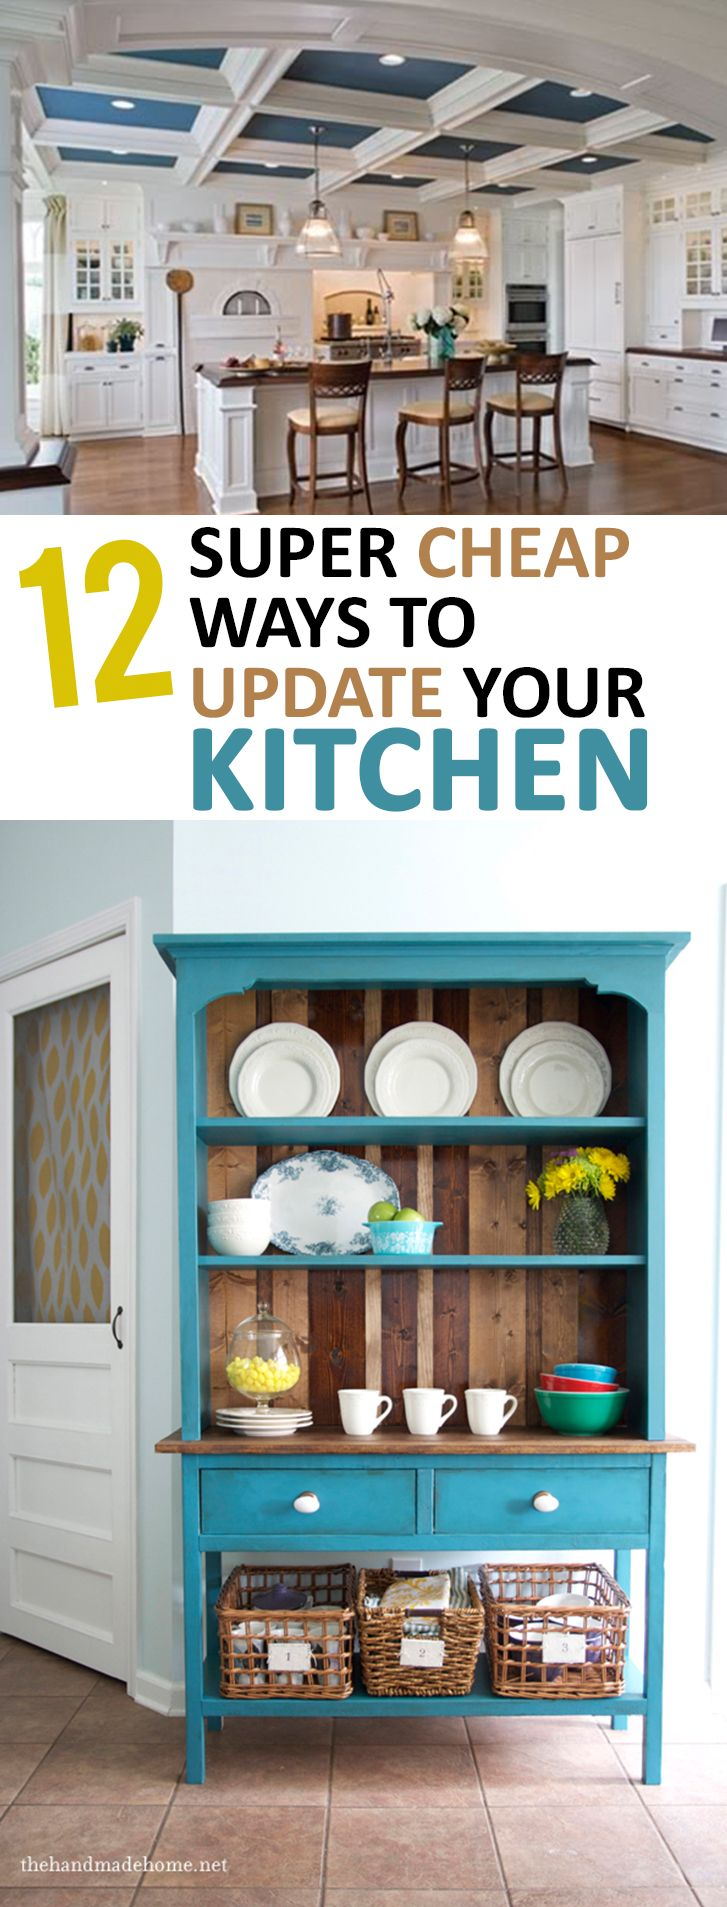 12 ways to update your kitchen